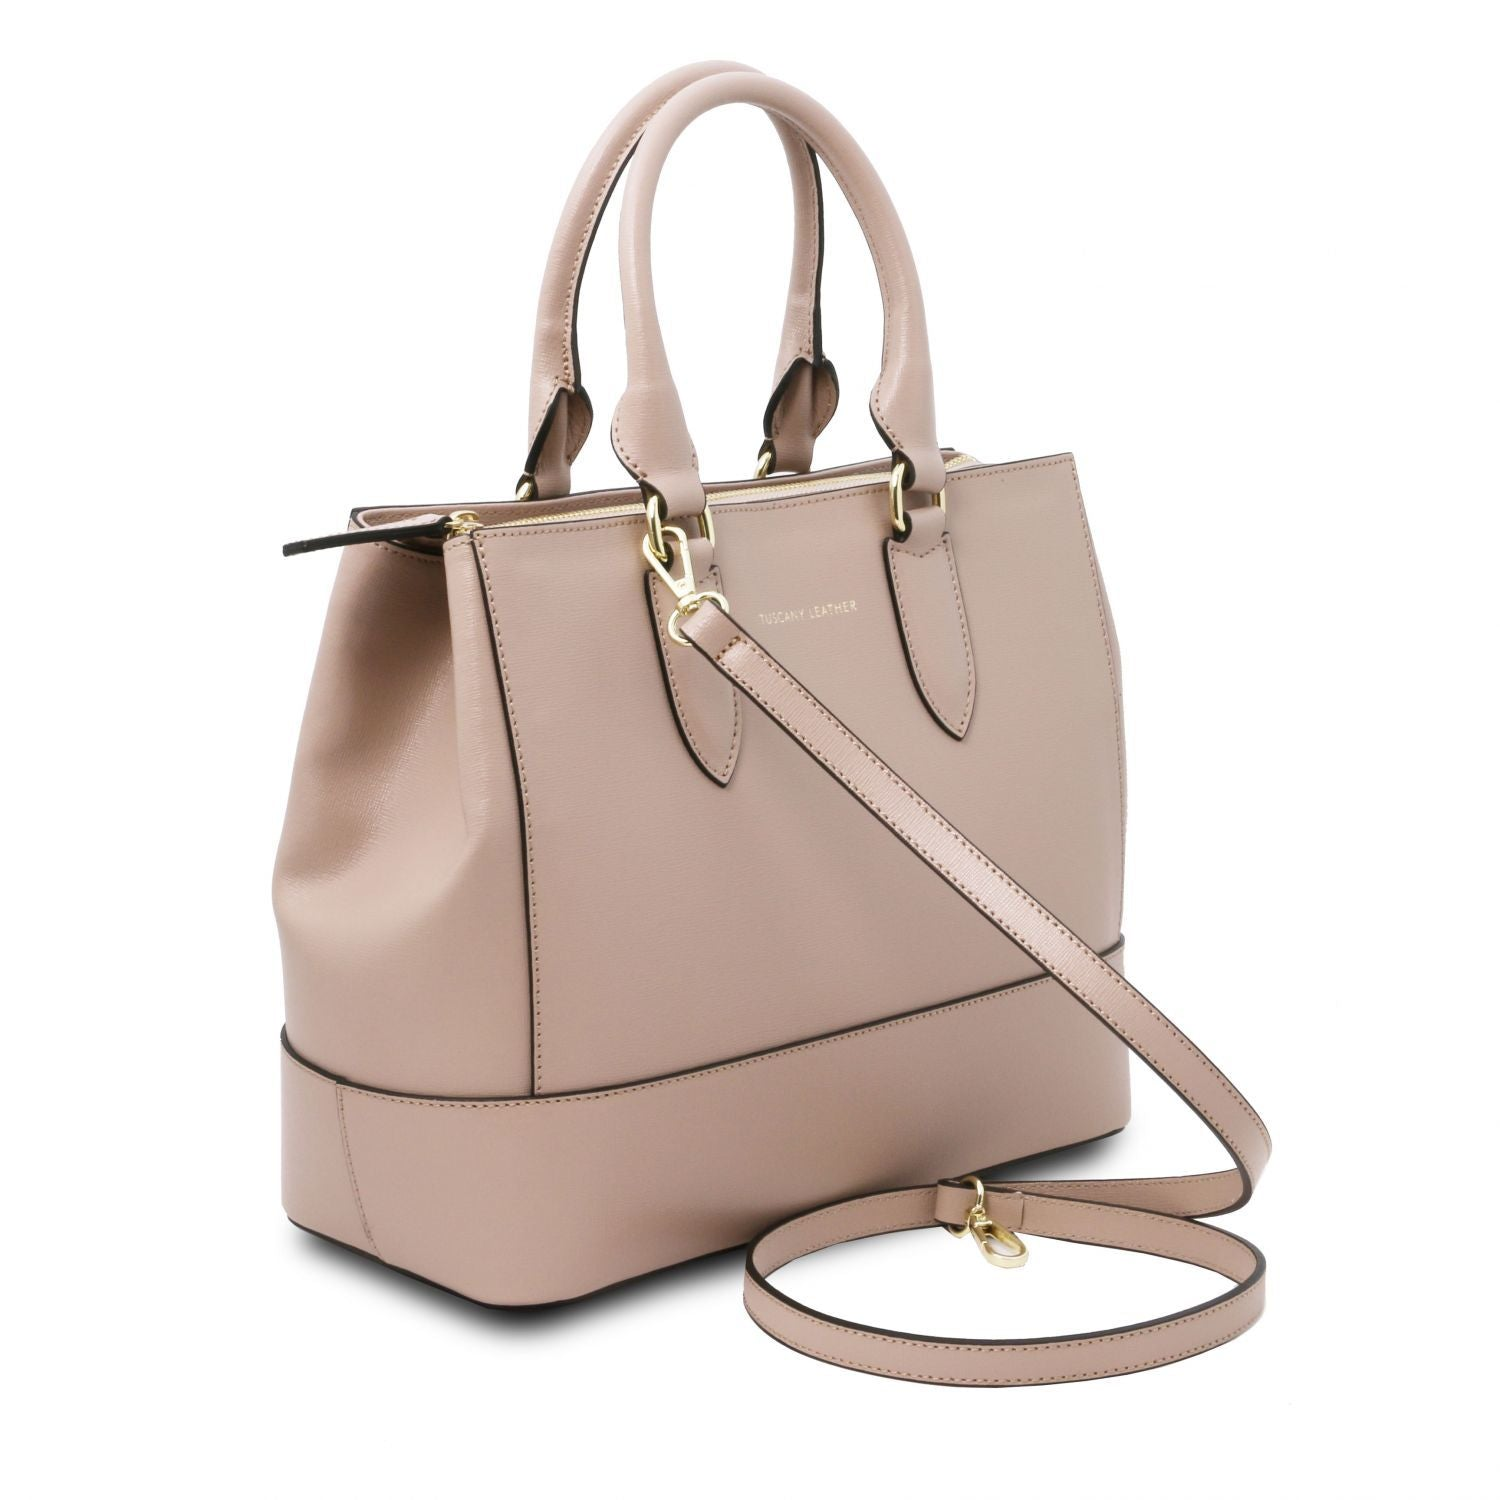 TL Bag - Saffiano leather handbag (TL141638) - Leather handbags | DILUSSOBAGS